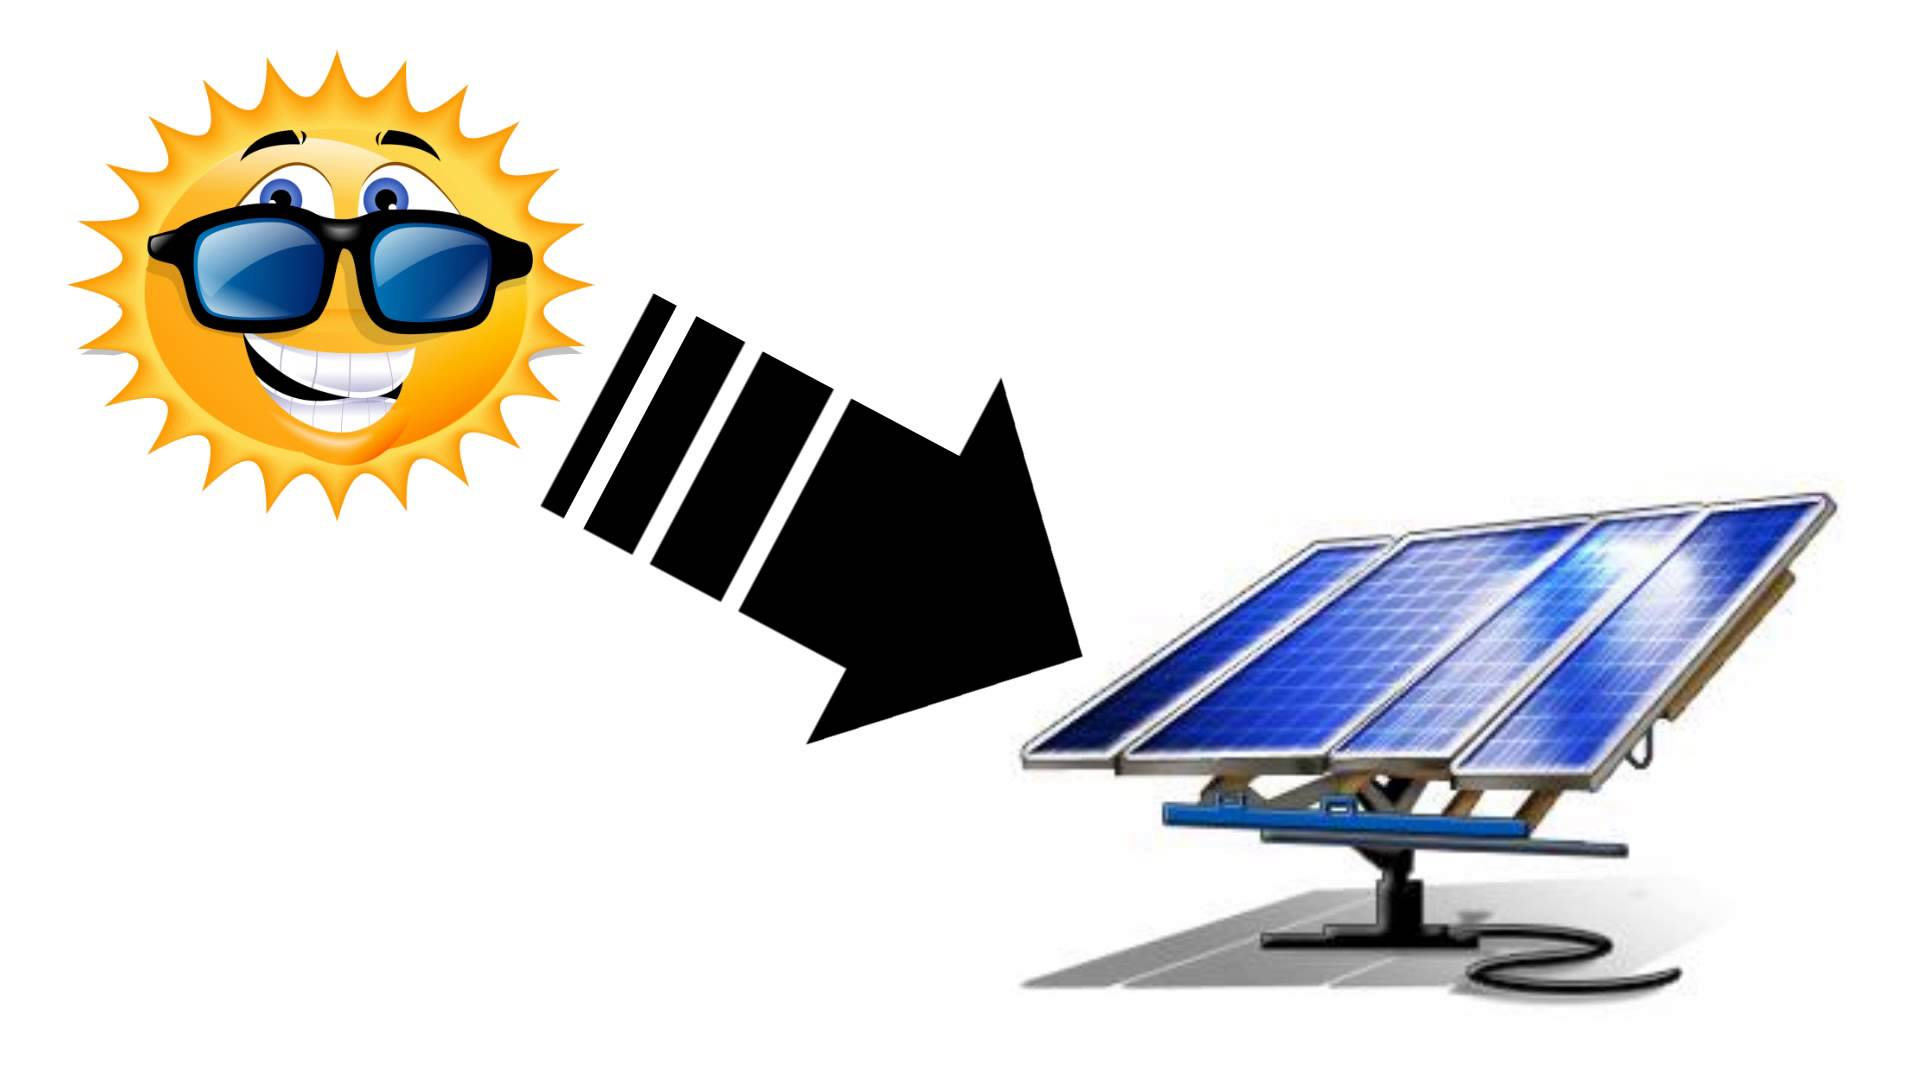 Energy clipart active Vs Active Energy & Active